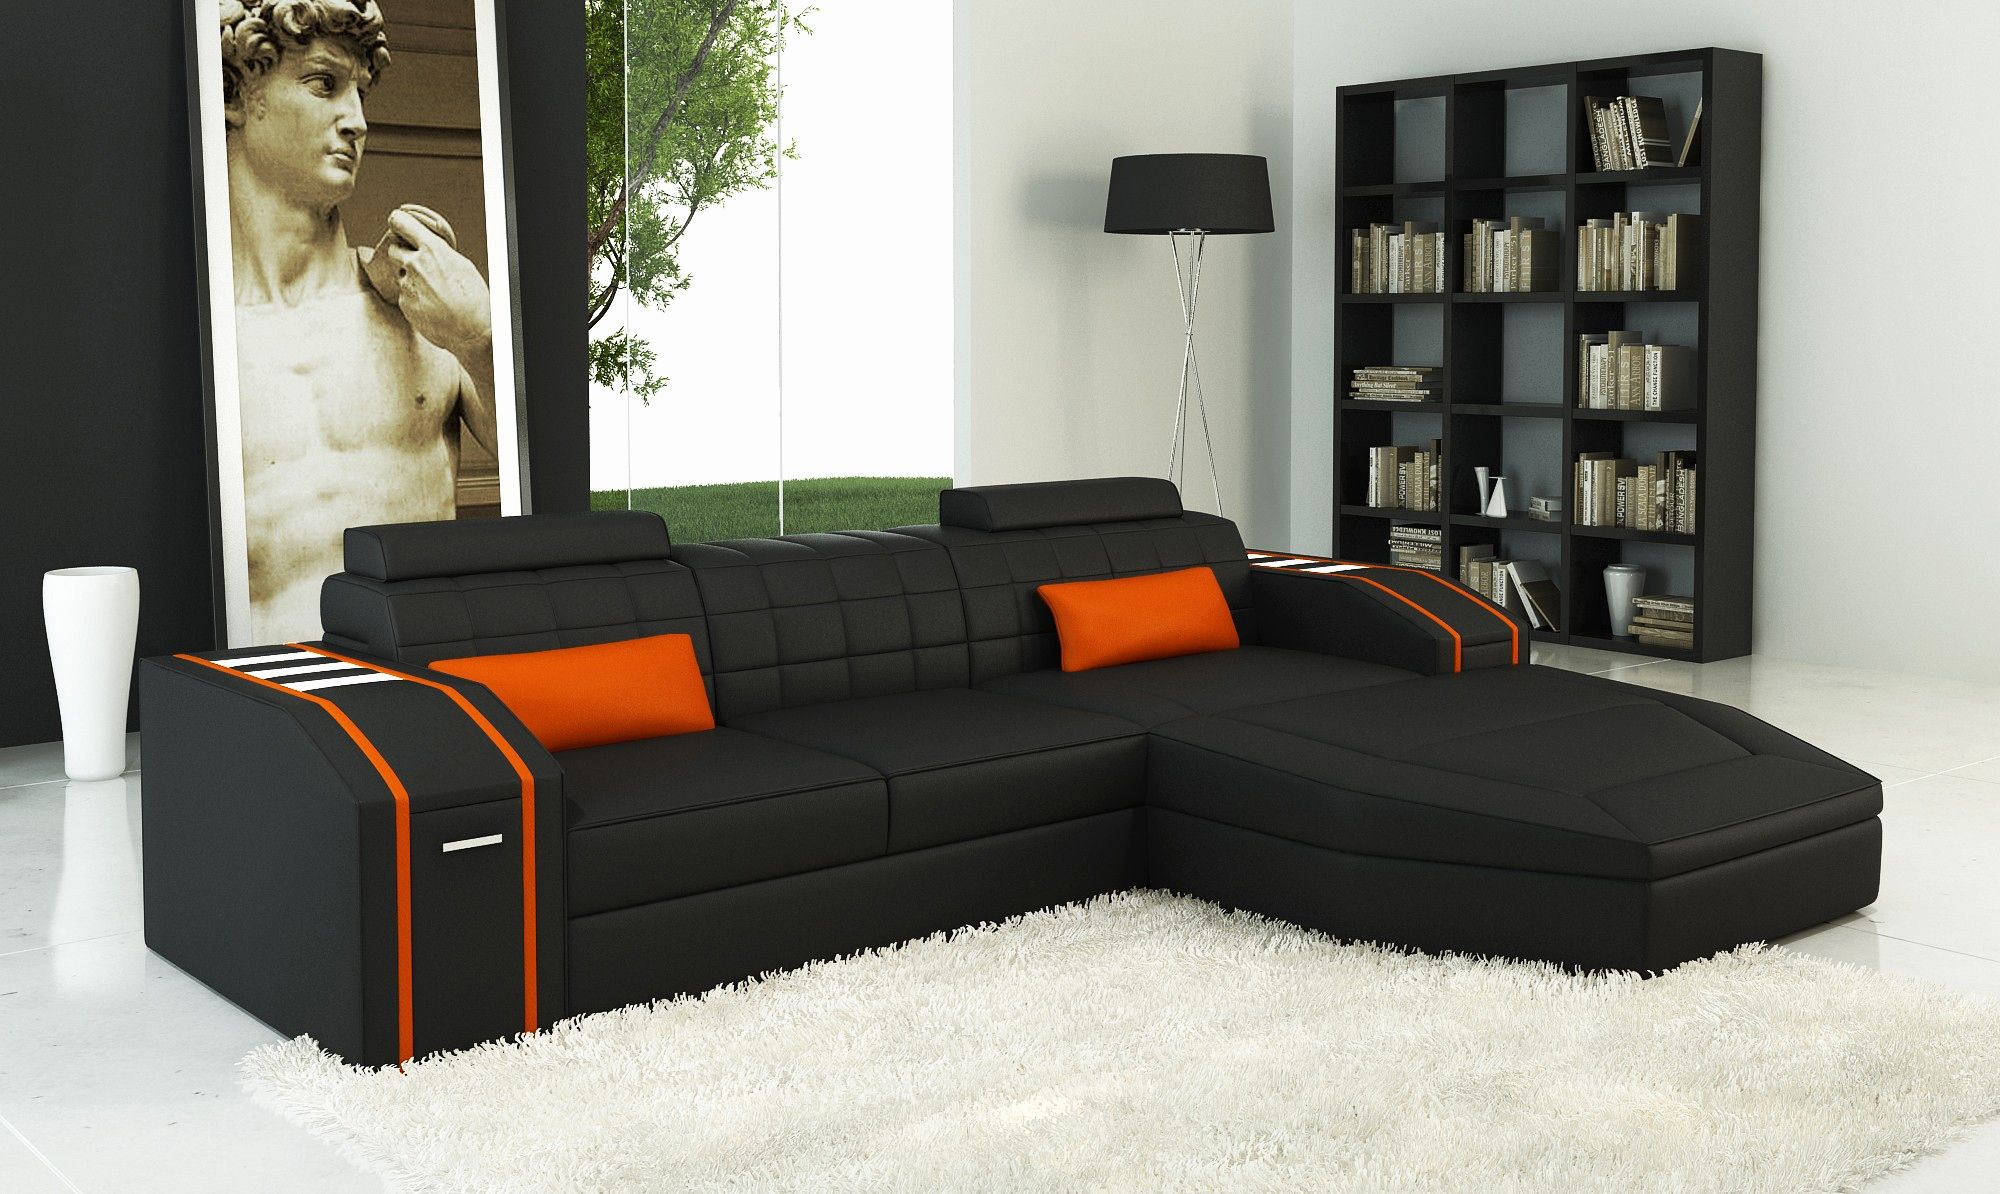 Luxury Affordable Sofa Sets Art Affordable Sofa Sets Beautiful Furniture Sectional Sofa Leather Living Room Furniture Leather Corner Sofa Modern Sofa Sectional